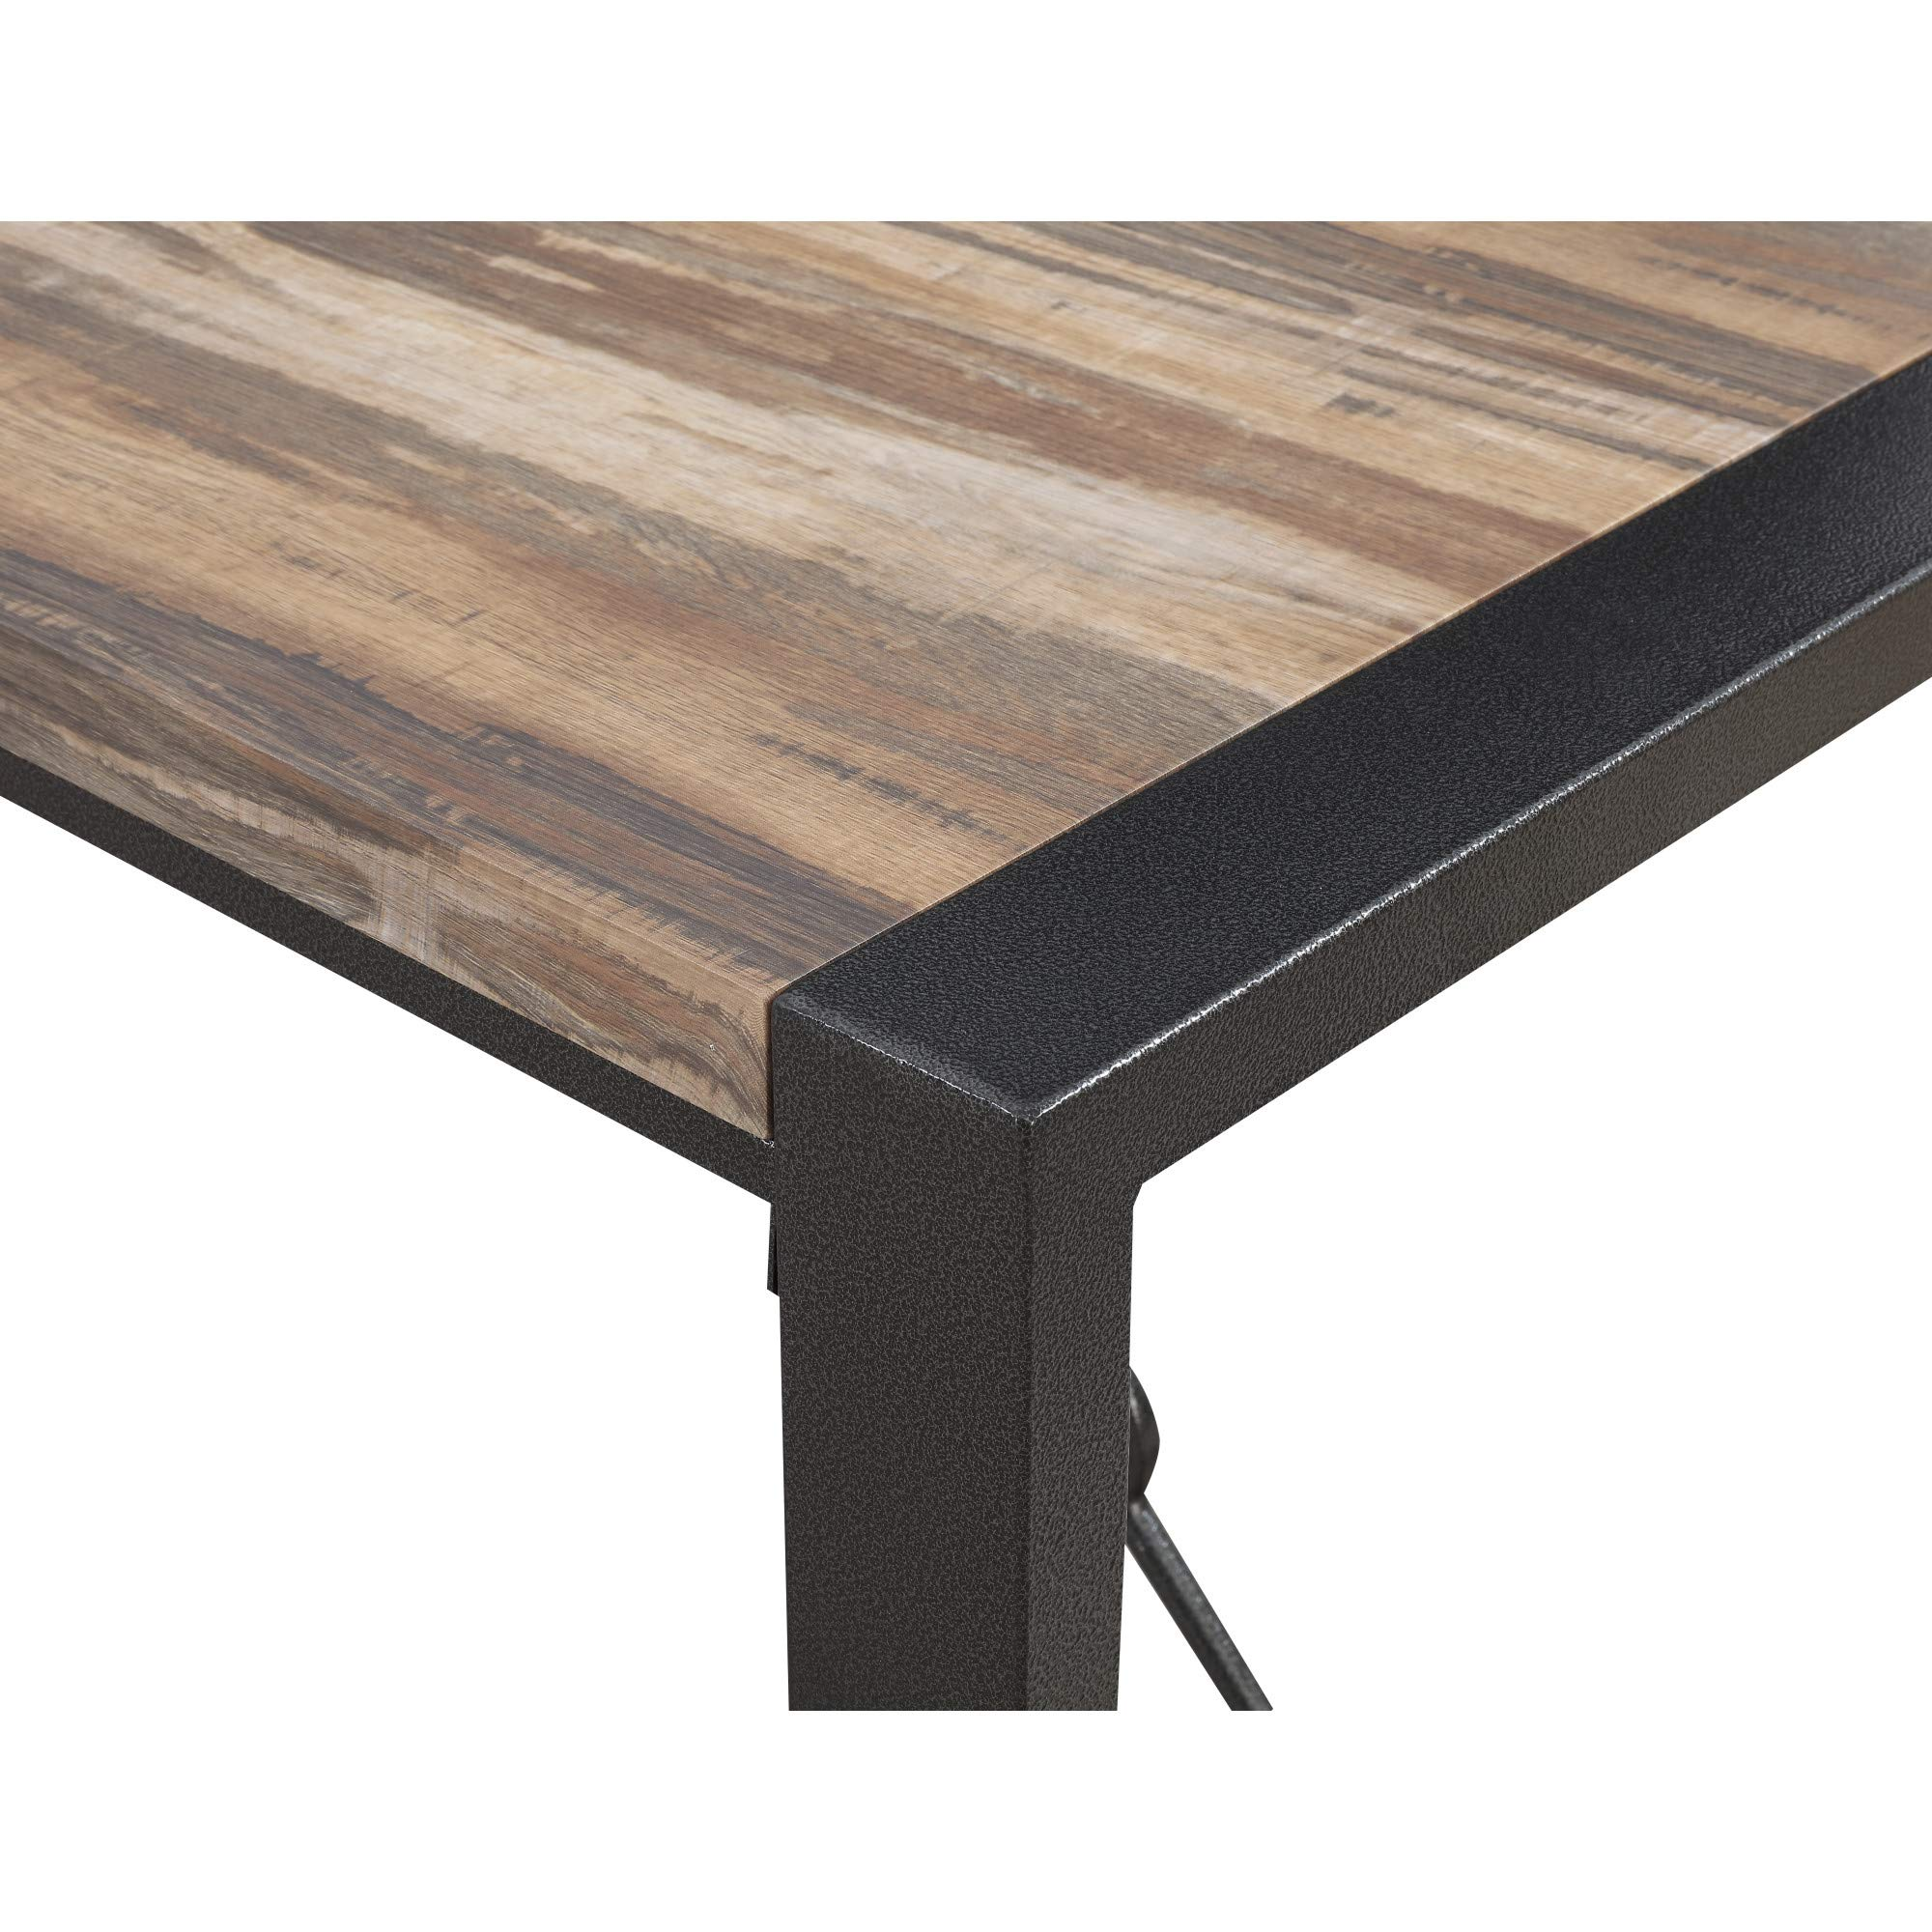 Taras 59'' Dining Table in Jet Black with Wood Veneer Top And Metal Base, by Artum Hill by Artum Hill (Image #4)